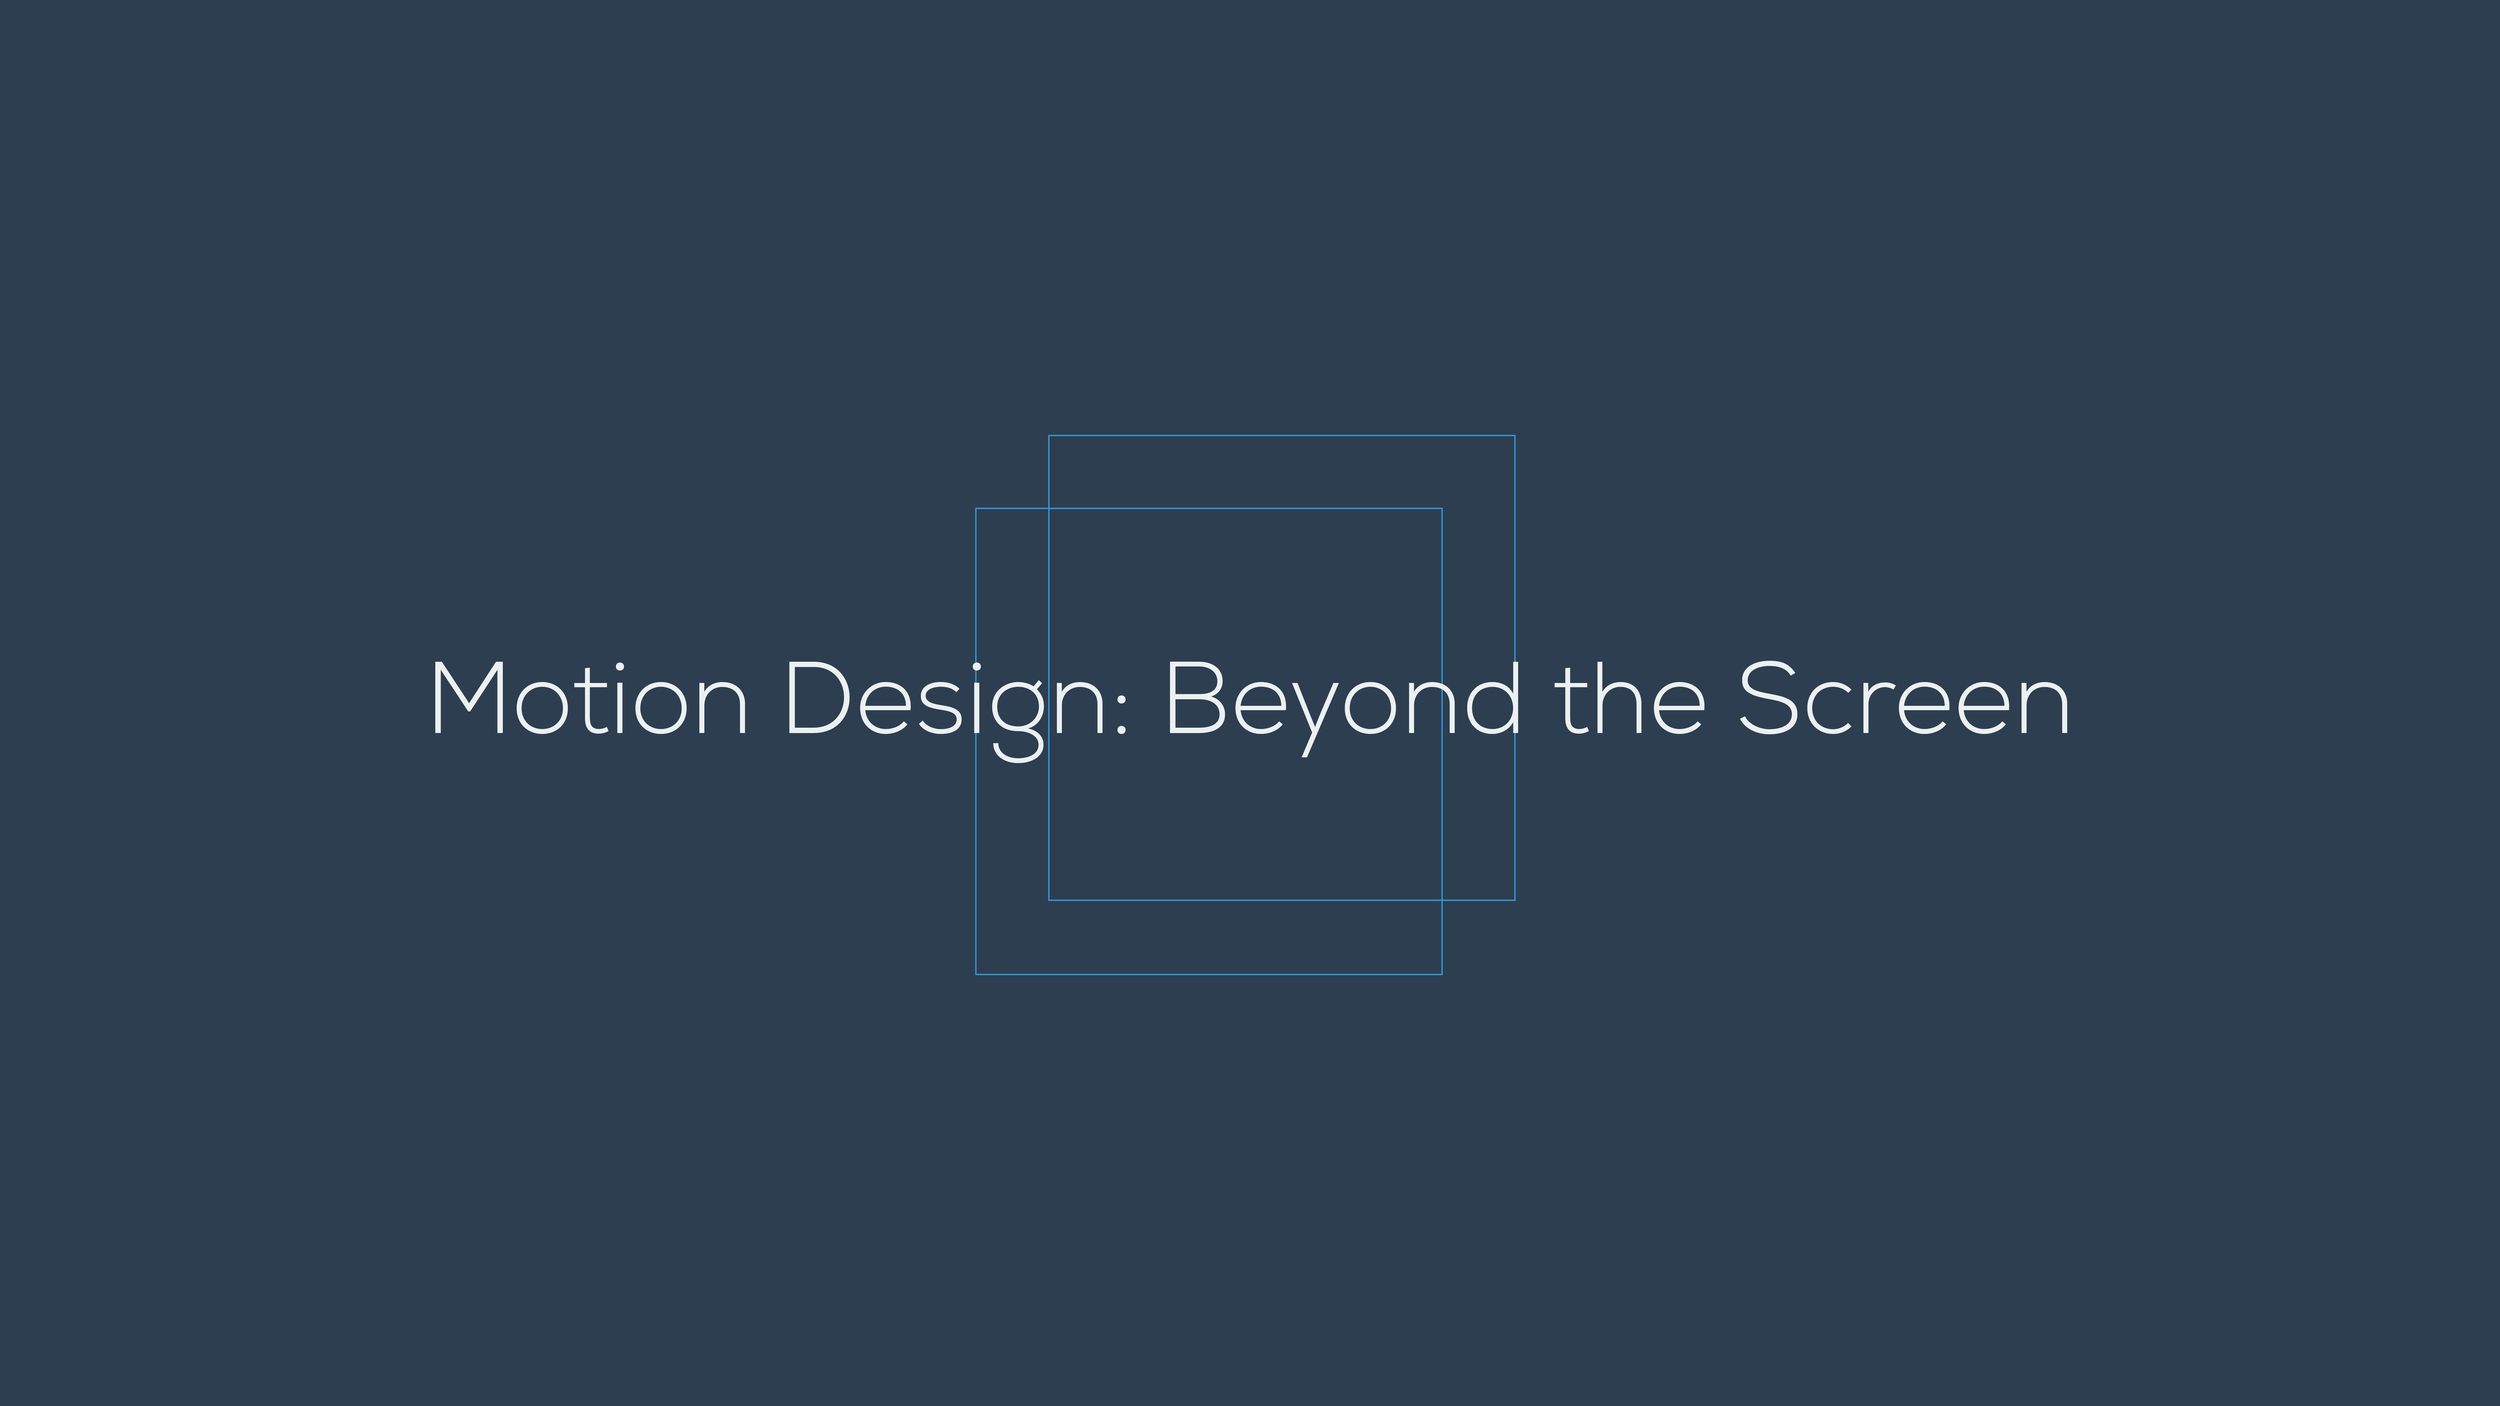 motion-design-beyond-the-screen-banner.jpg